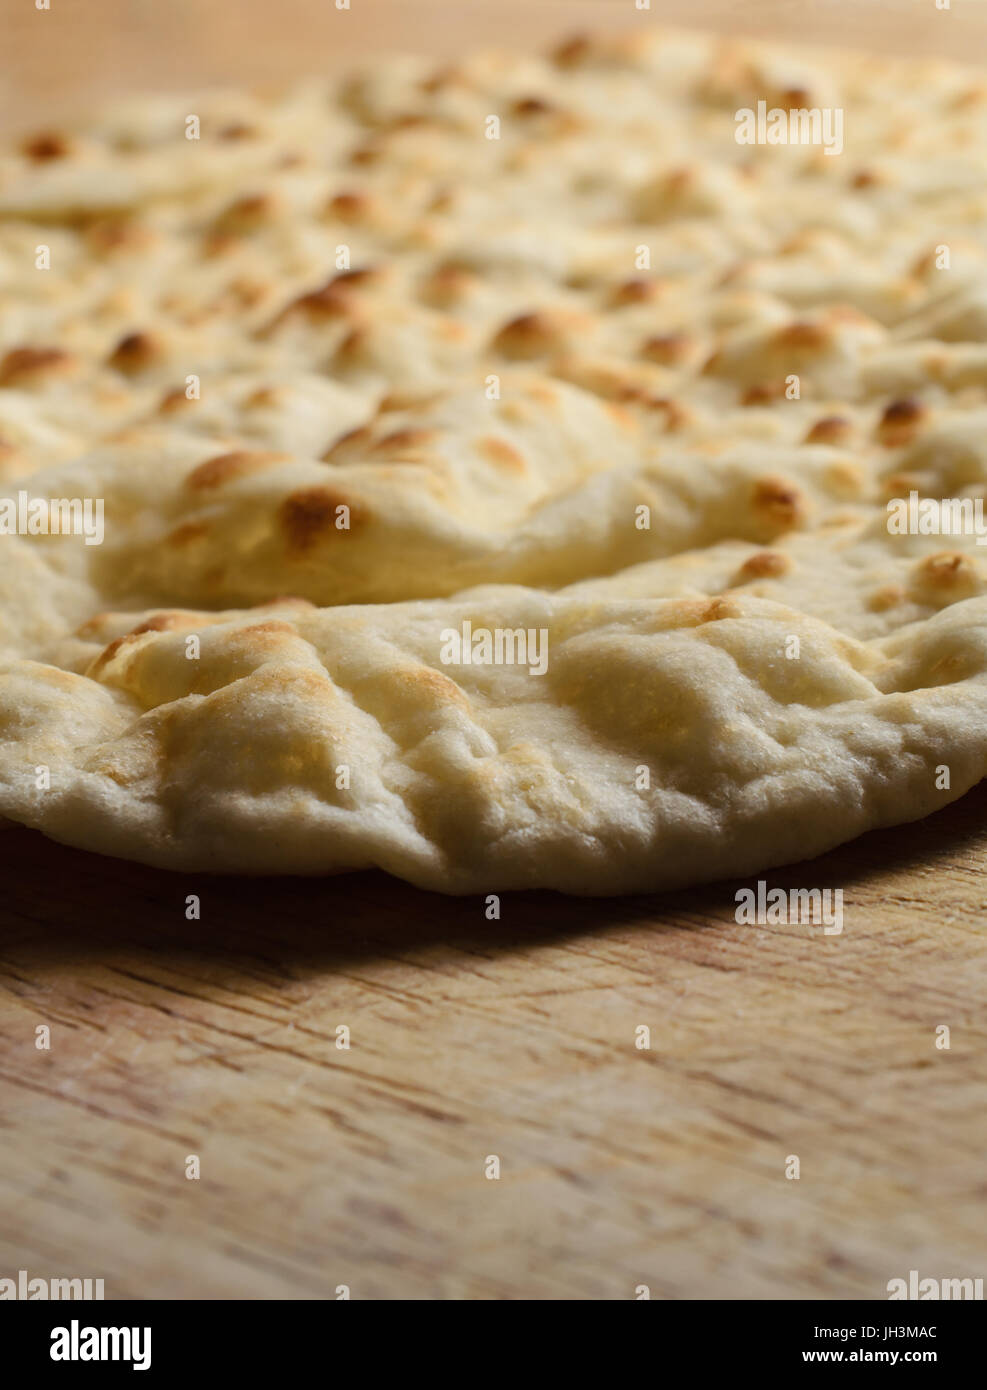 A bare, shop-bought  pizza base, ready to be topped, on an old wooden chopping board. Stock Photo